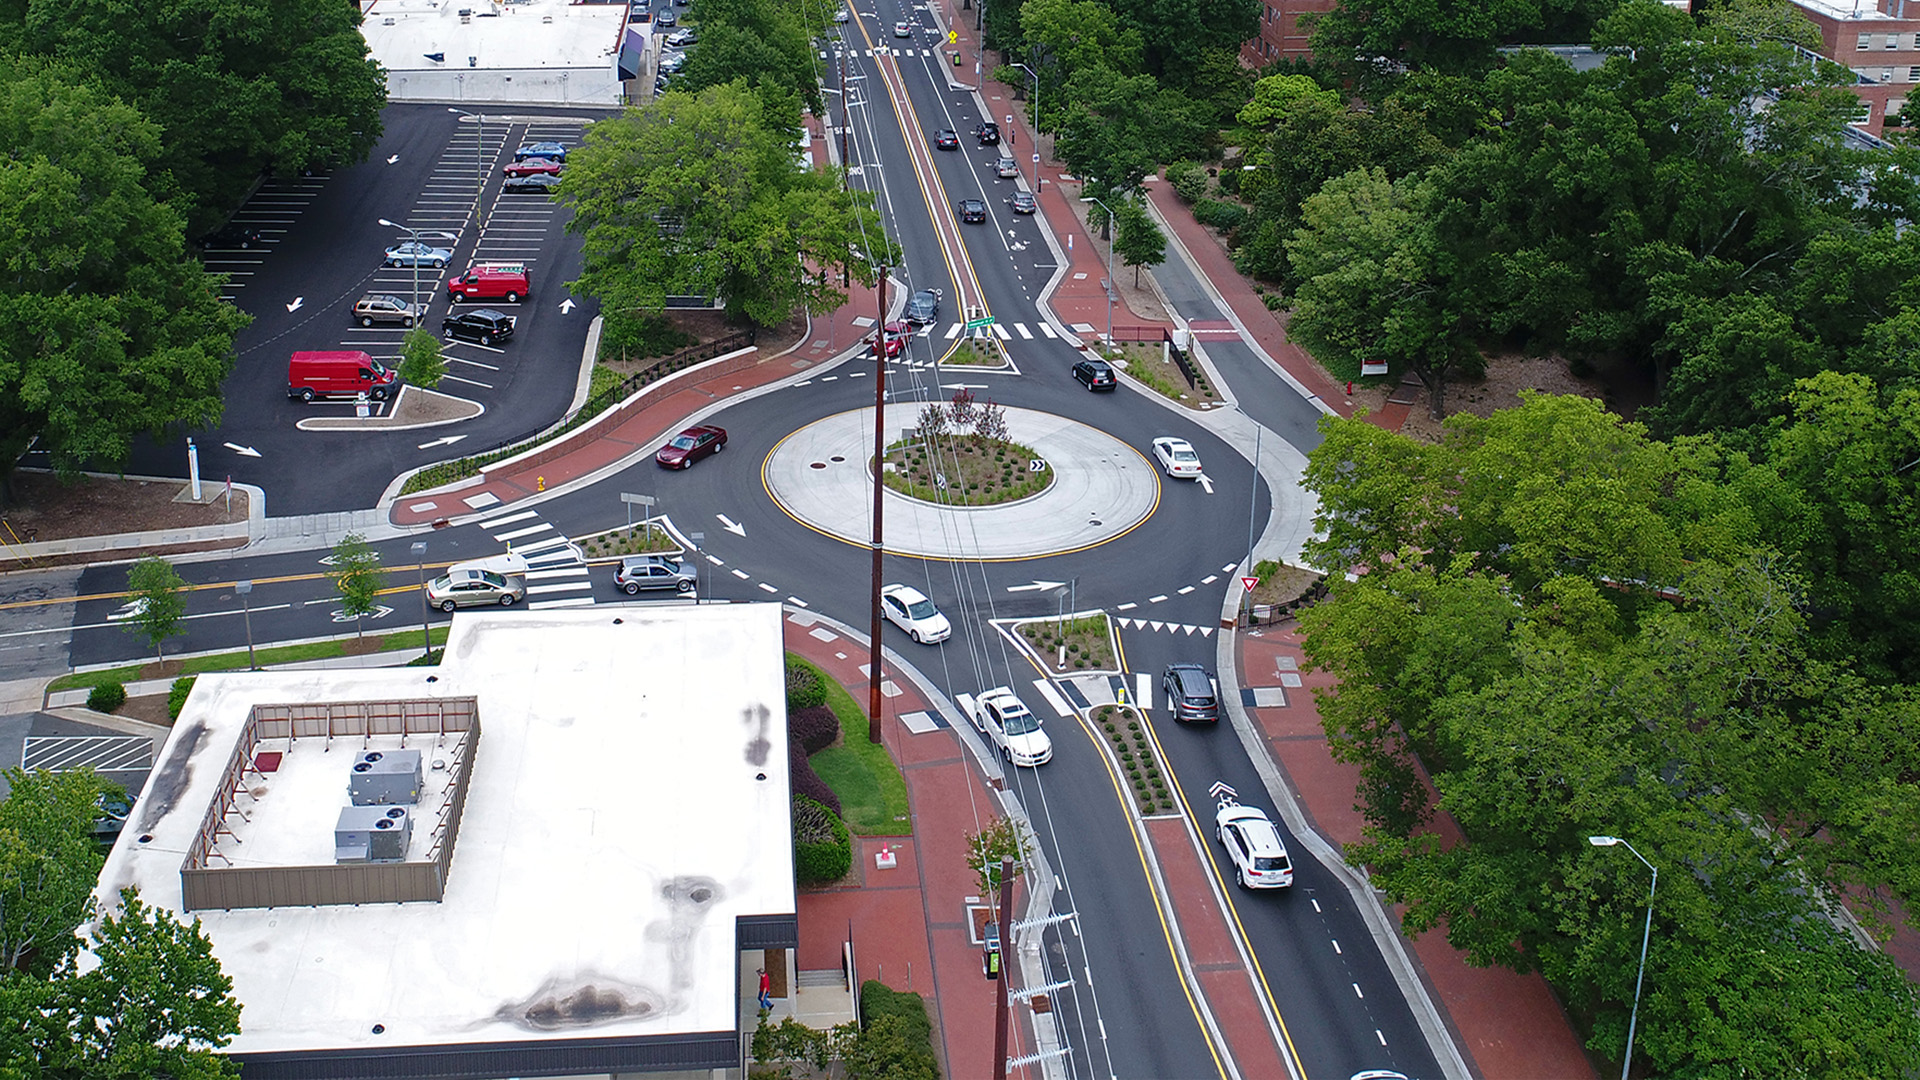 Roundabout at Hillsborough St and Brooks Ave. intersection